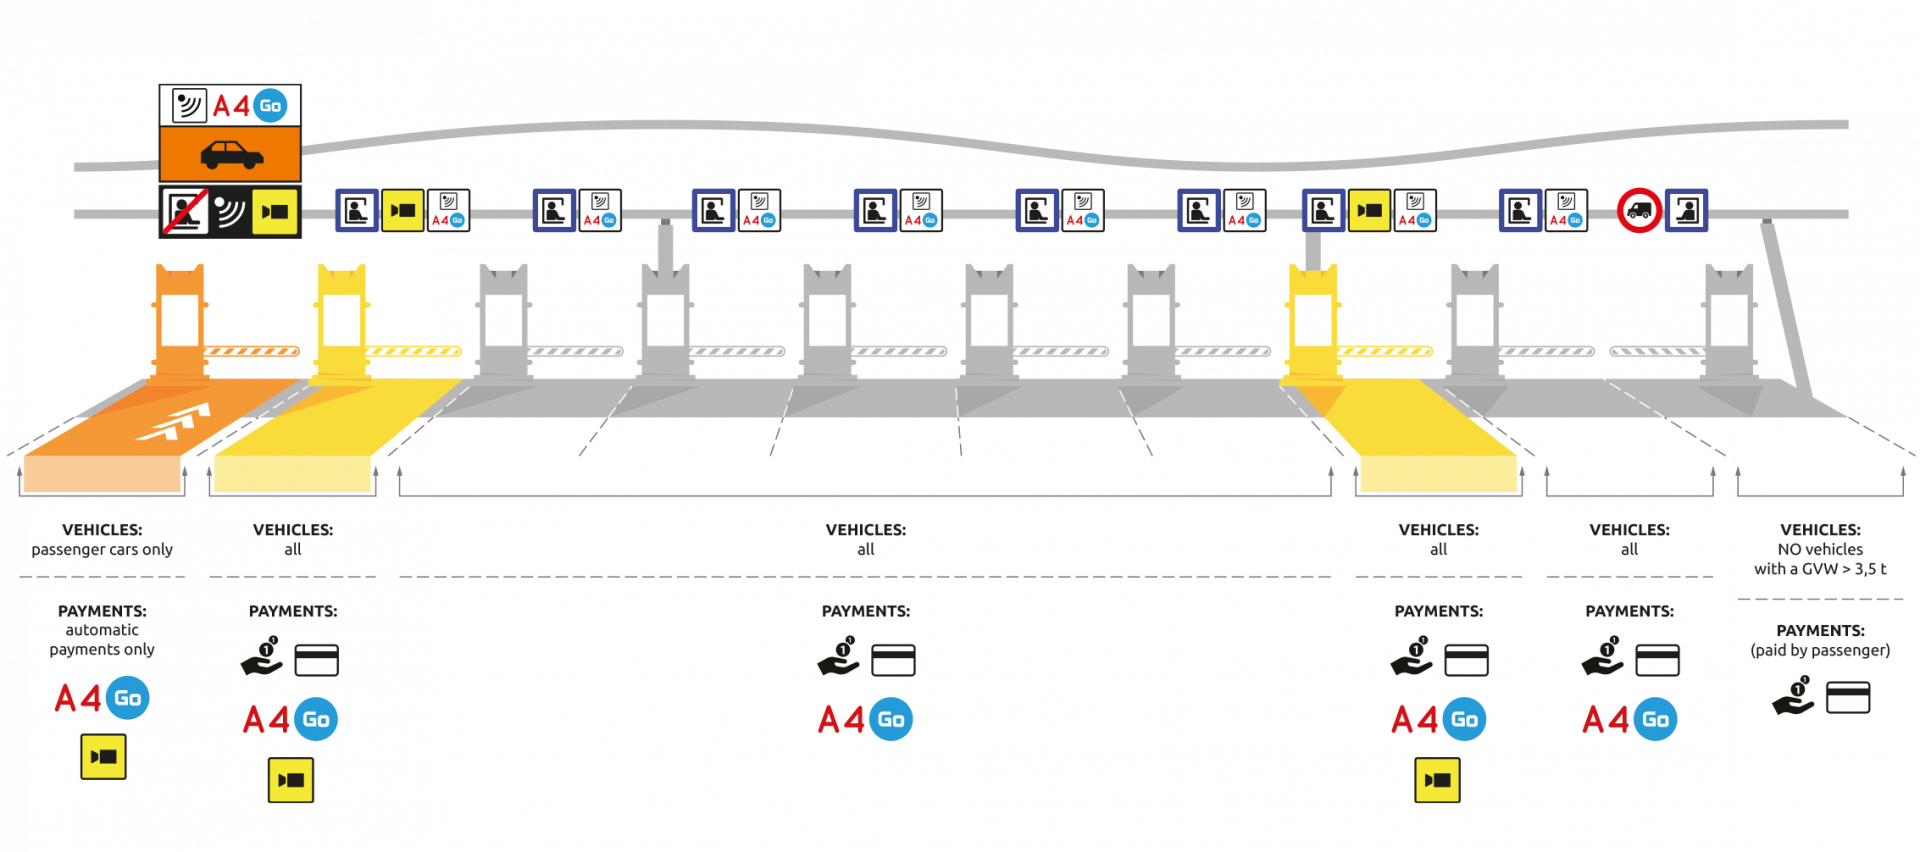 Toll collection plazas are marked like this